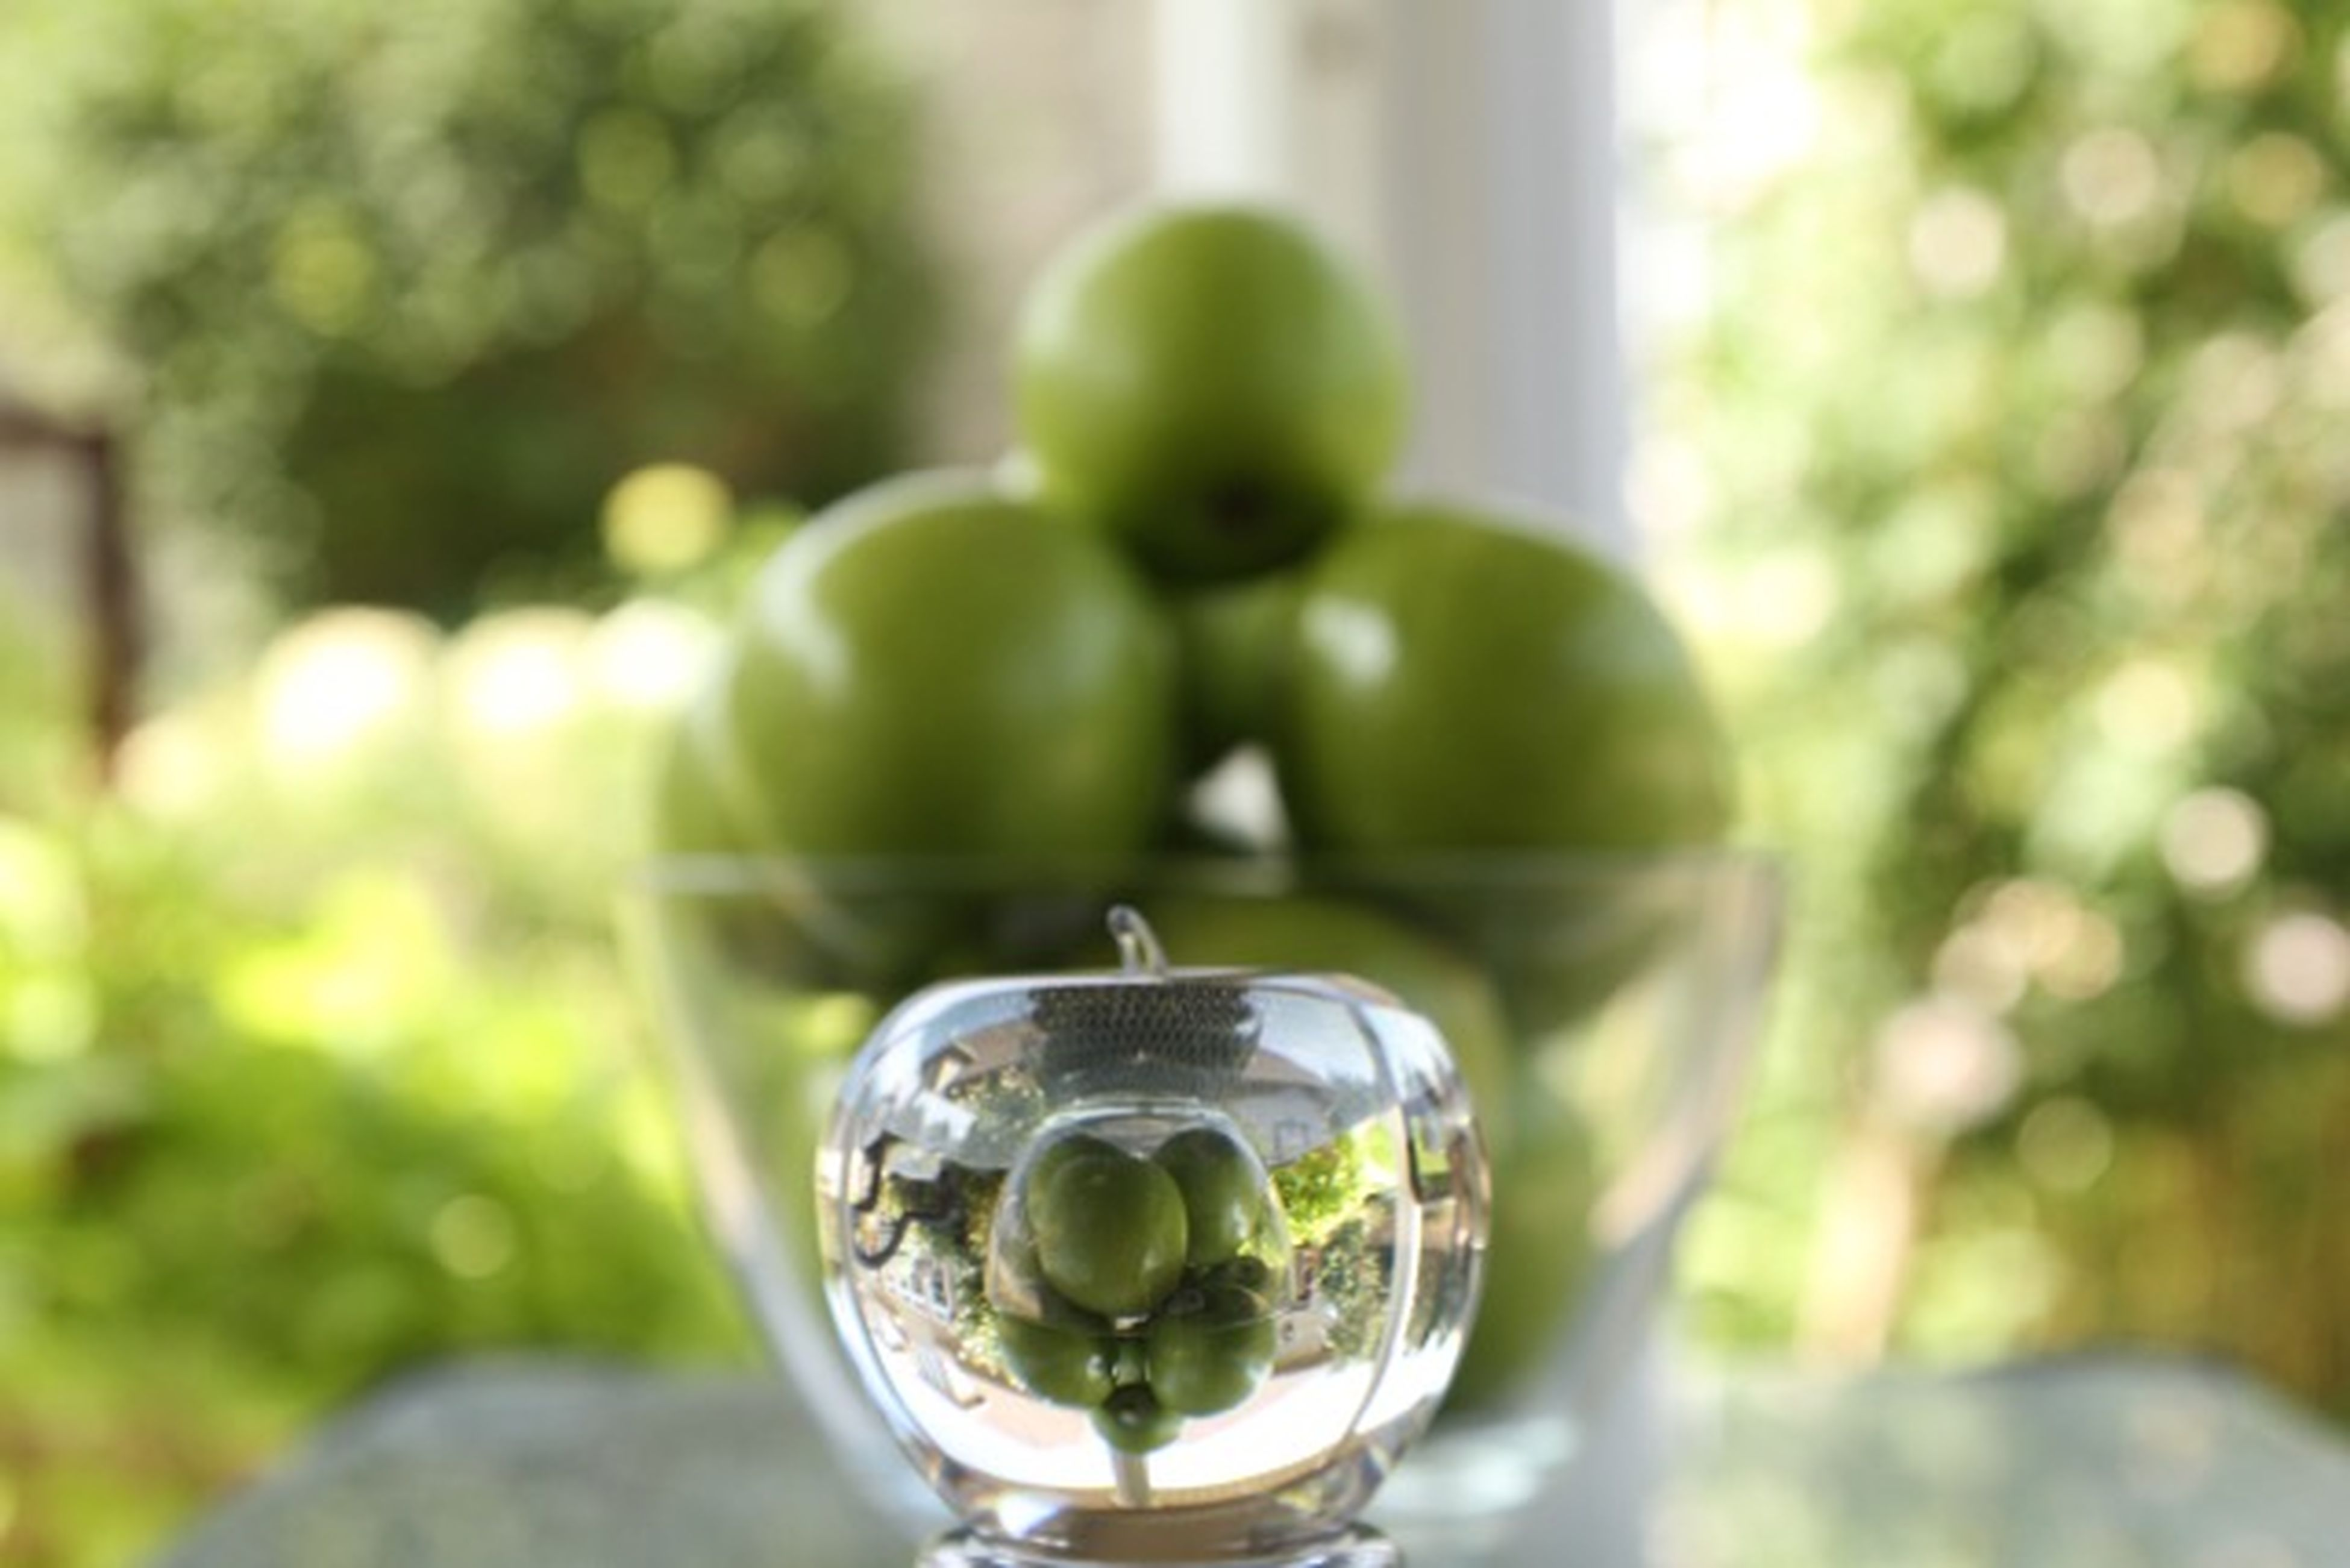 glass - material, transparent, focus on foreground, close-up, indoors, green color, fragility, freshness, glass, drinking glass, table, still life, selective focus, wineglass, plant, vase, reflection, growth, refreshment, water